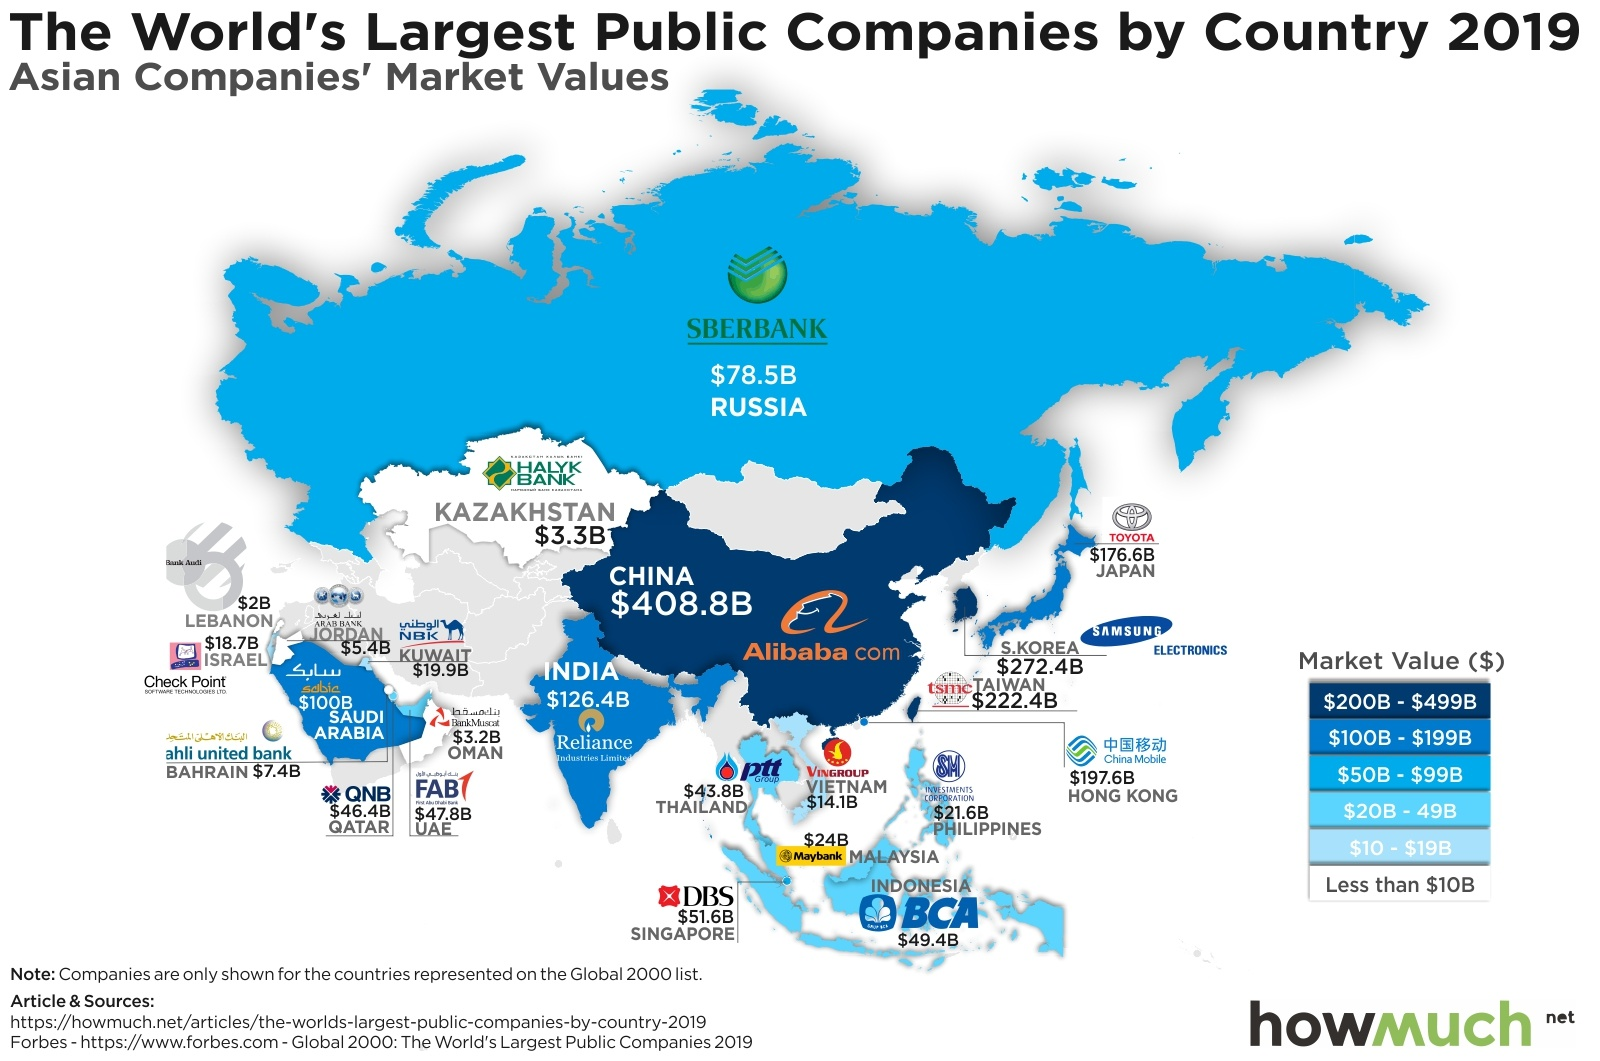 Mapping Out Each Country's Largest Public Company